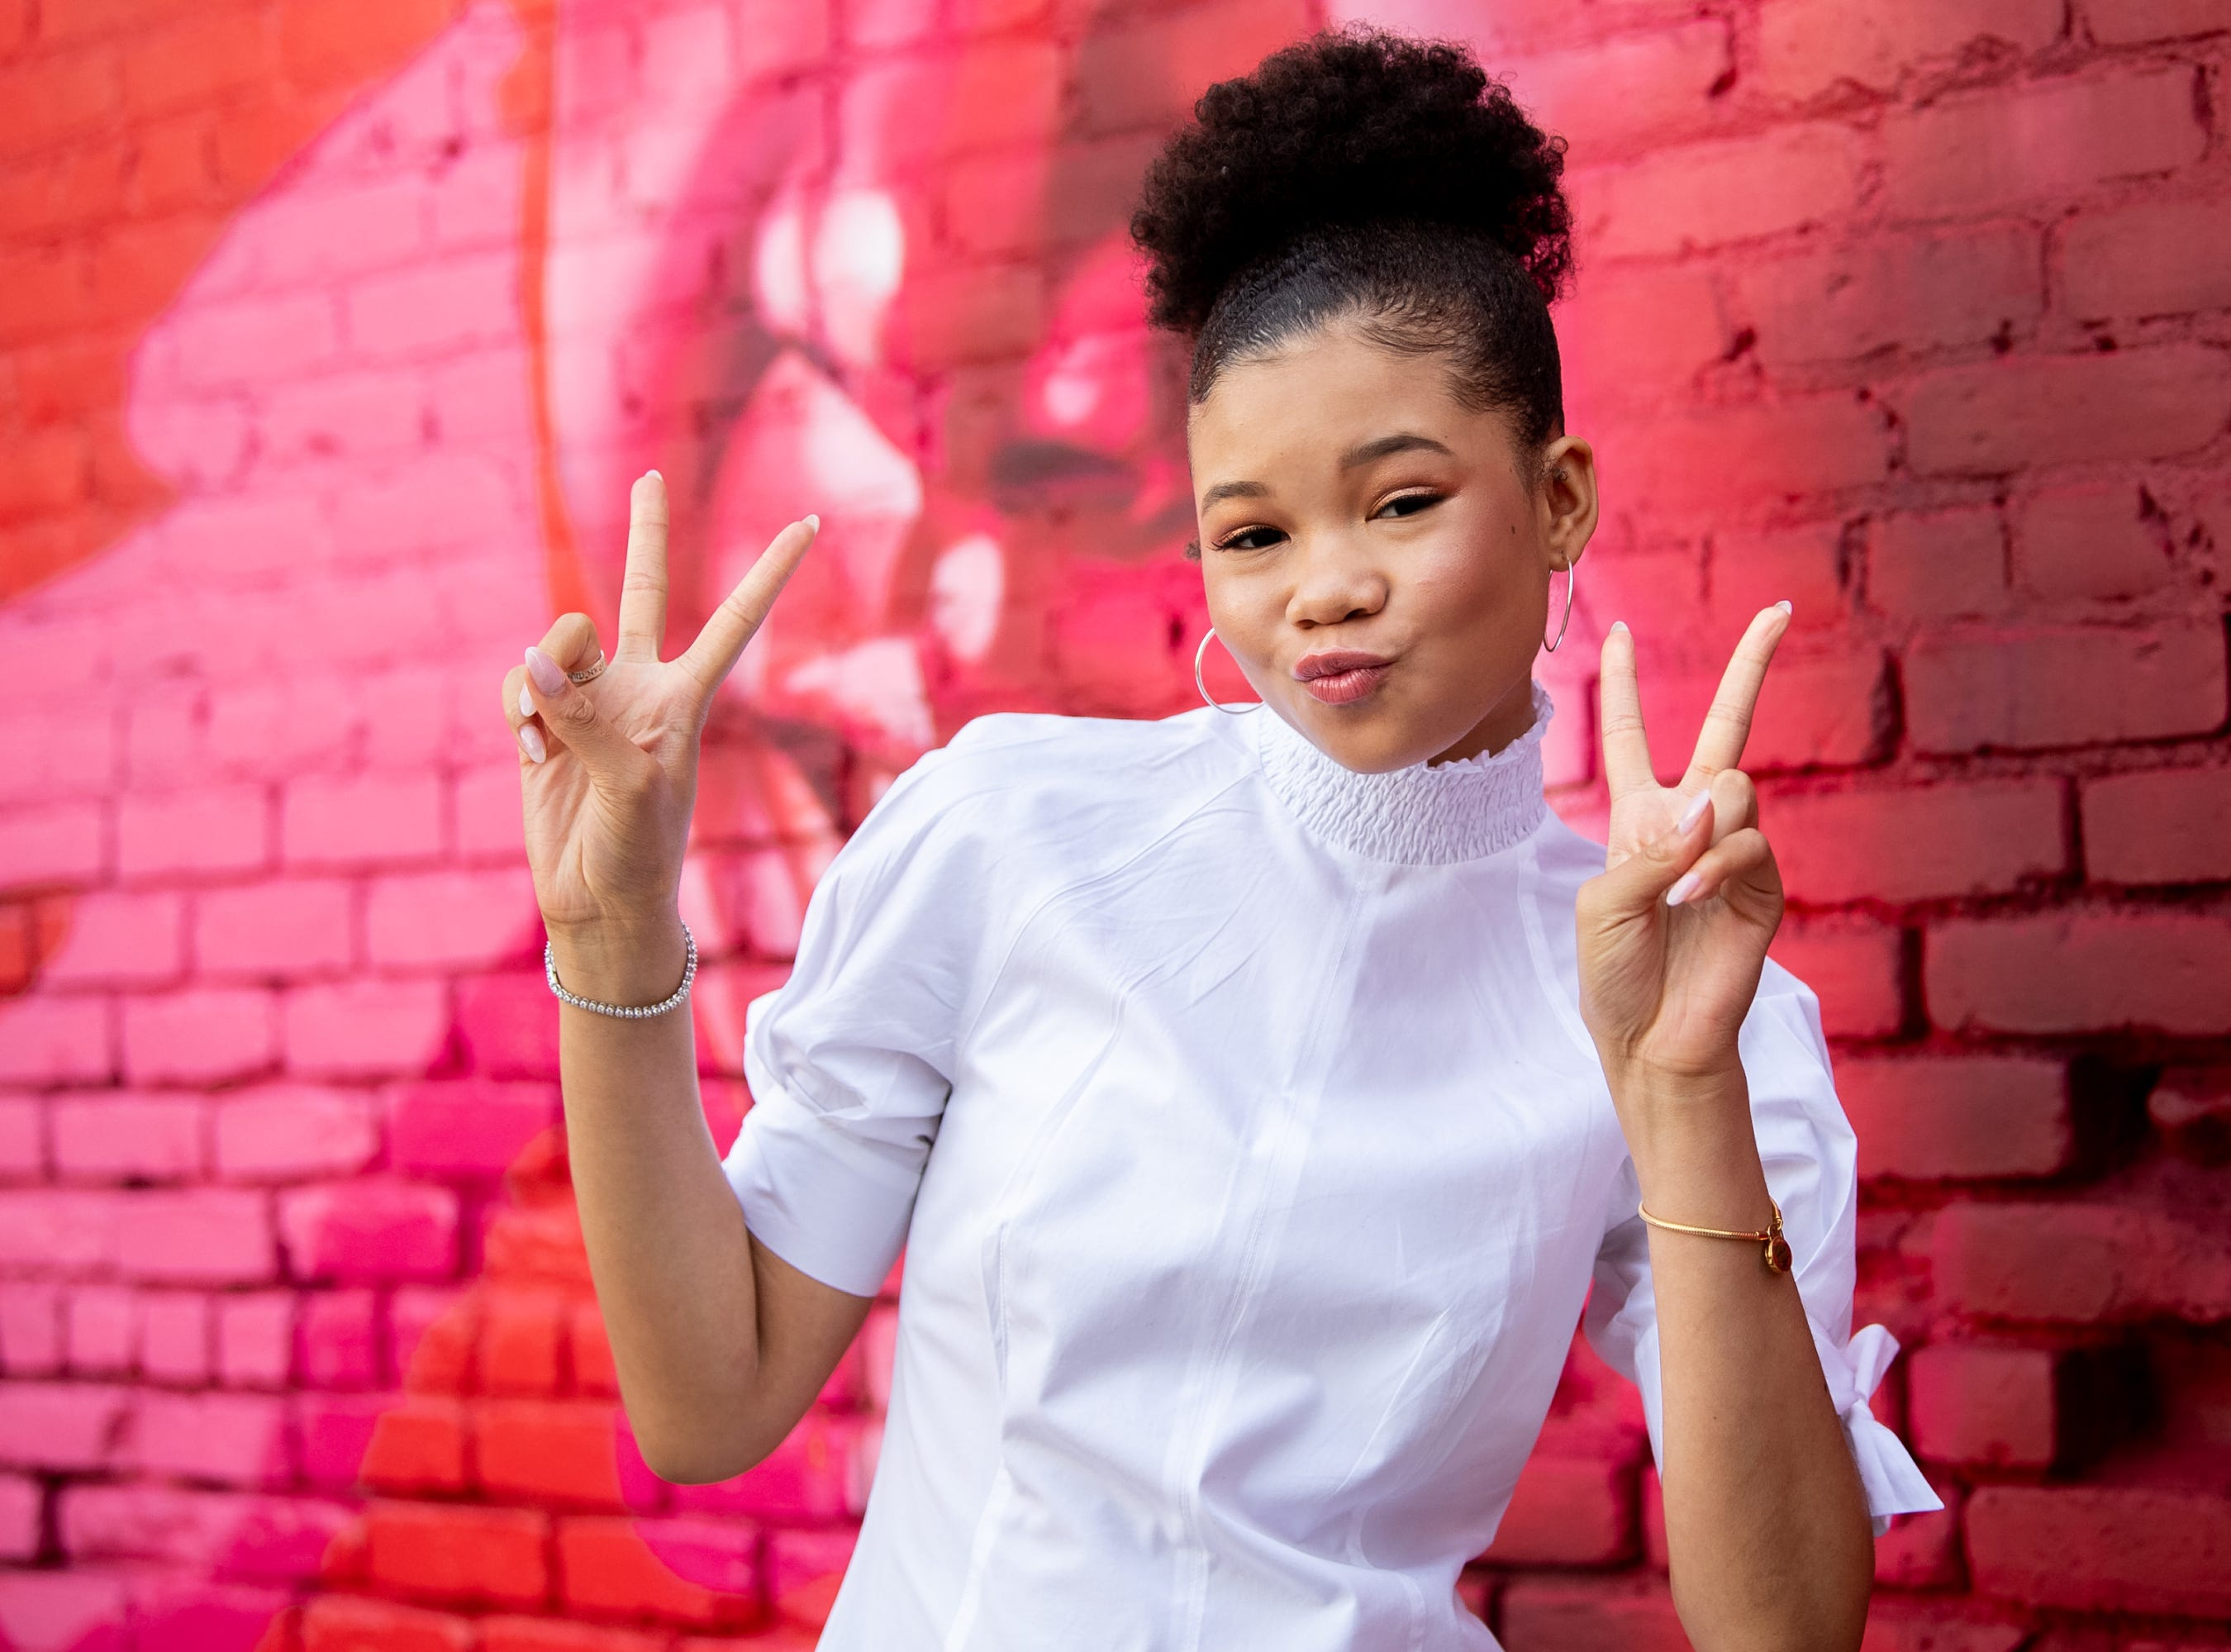 LOS ANGELES, CALIFORNIA - JANUARY 22: Storm Reid attends the 3rd annual National Day of Racial Healing at Array on January 22, 2019 in Los Angeles, California. (Photo by Emma McIntyre/Getty Images) ORG XMIT: 775286570 ORIG FILE ID: 1098156084